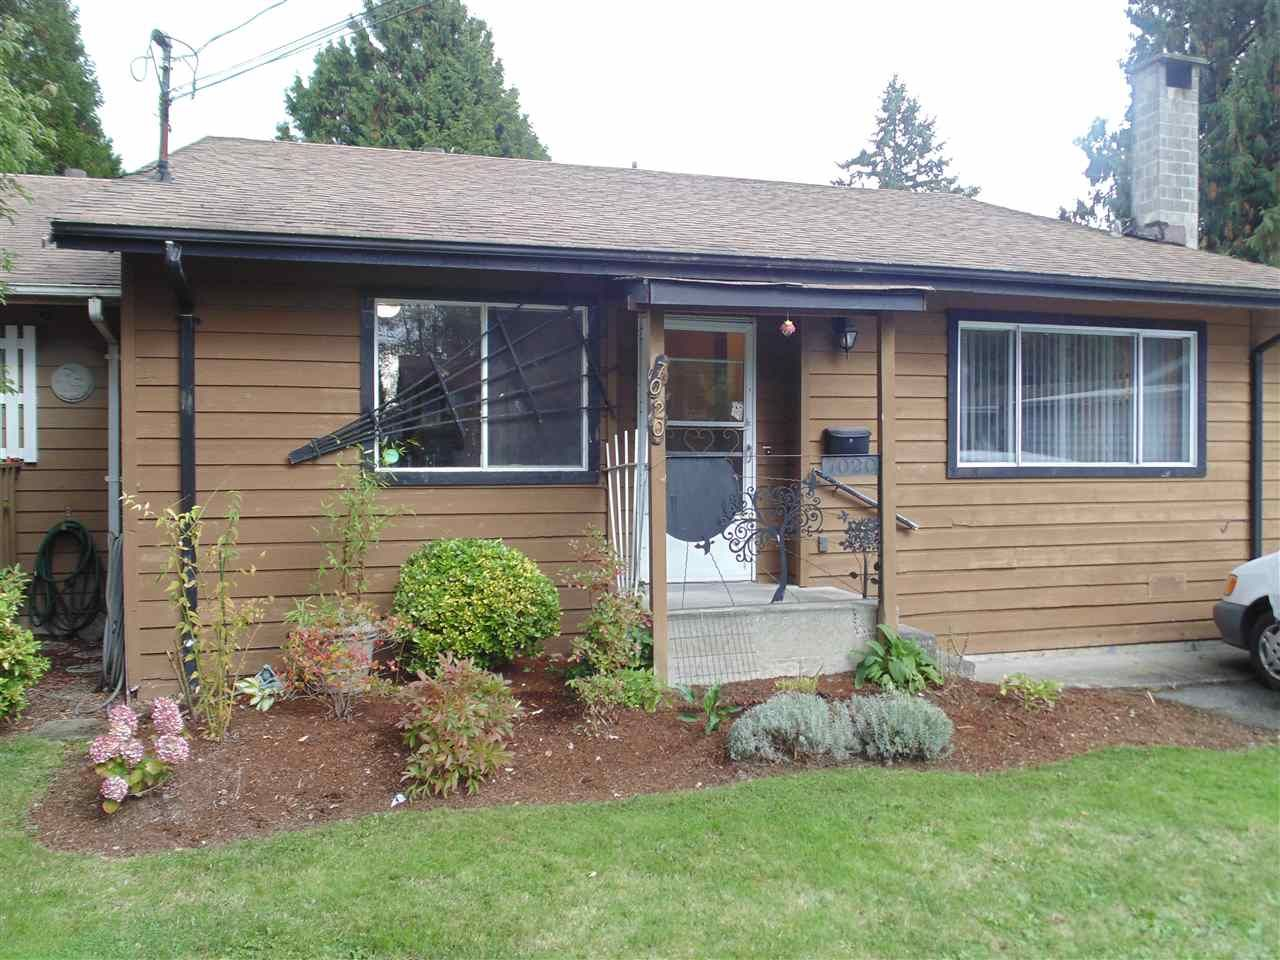 Main Photo: 7020 141 Street in Surrey: East Newton 1/2 Duplex for sale : MLS®# R2408640